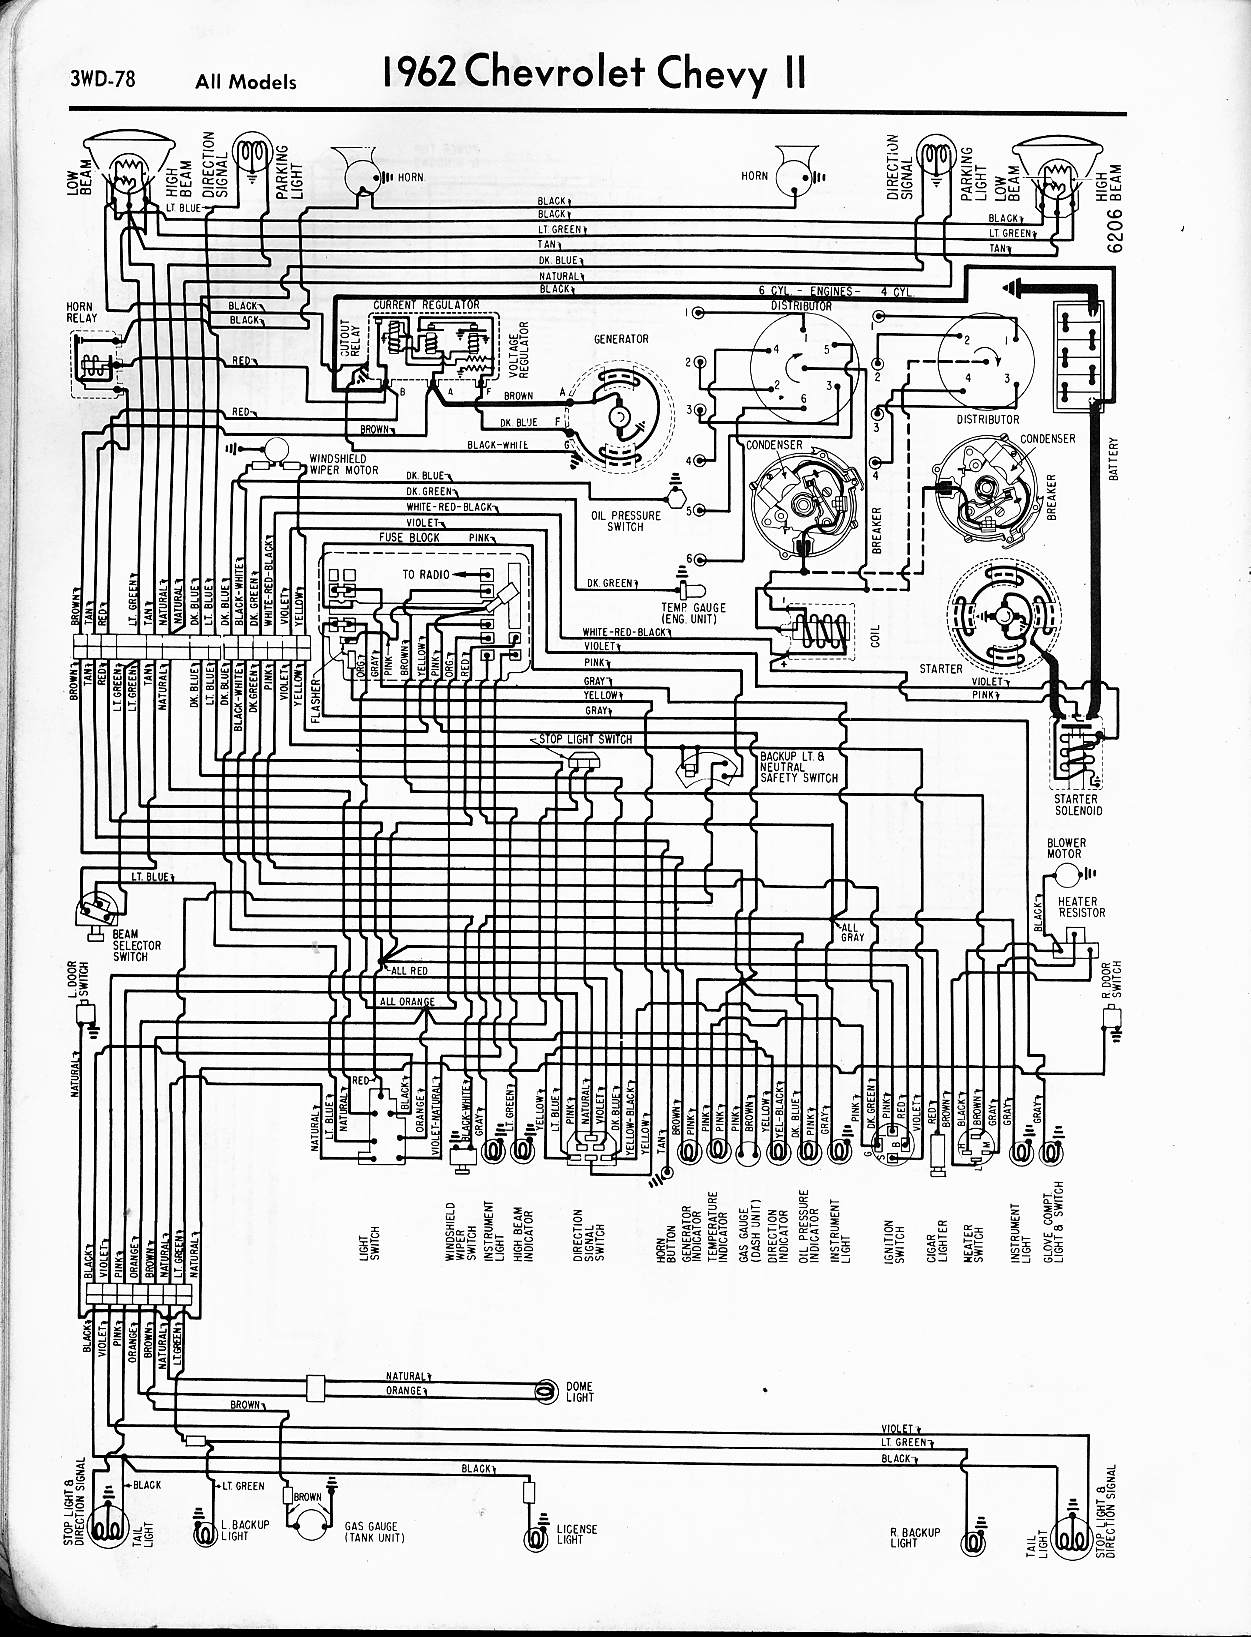 1968 Chevy Impala Turn Signal Wiring Diagram Electrical Diagrams Chevy  Impala Fuel Sending Wire Hot Rod Wiring Diagrams Chevy Impala Diagram